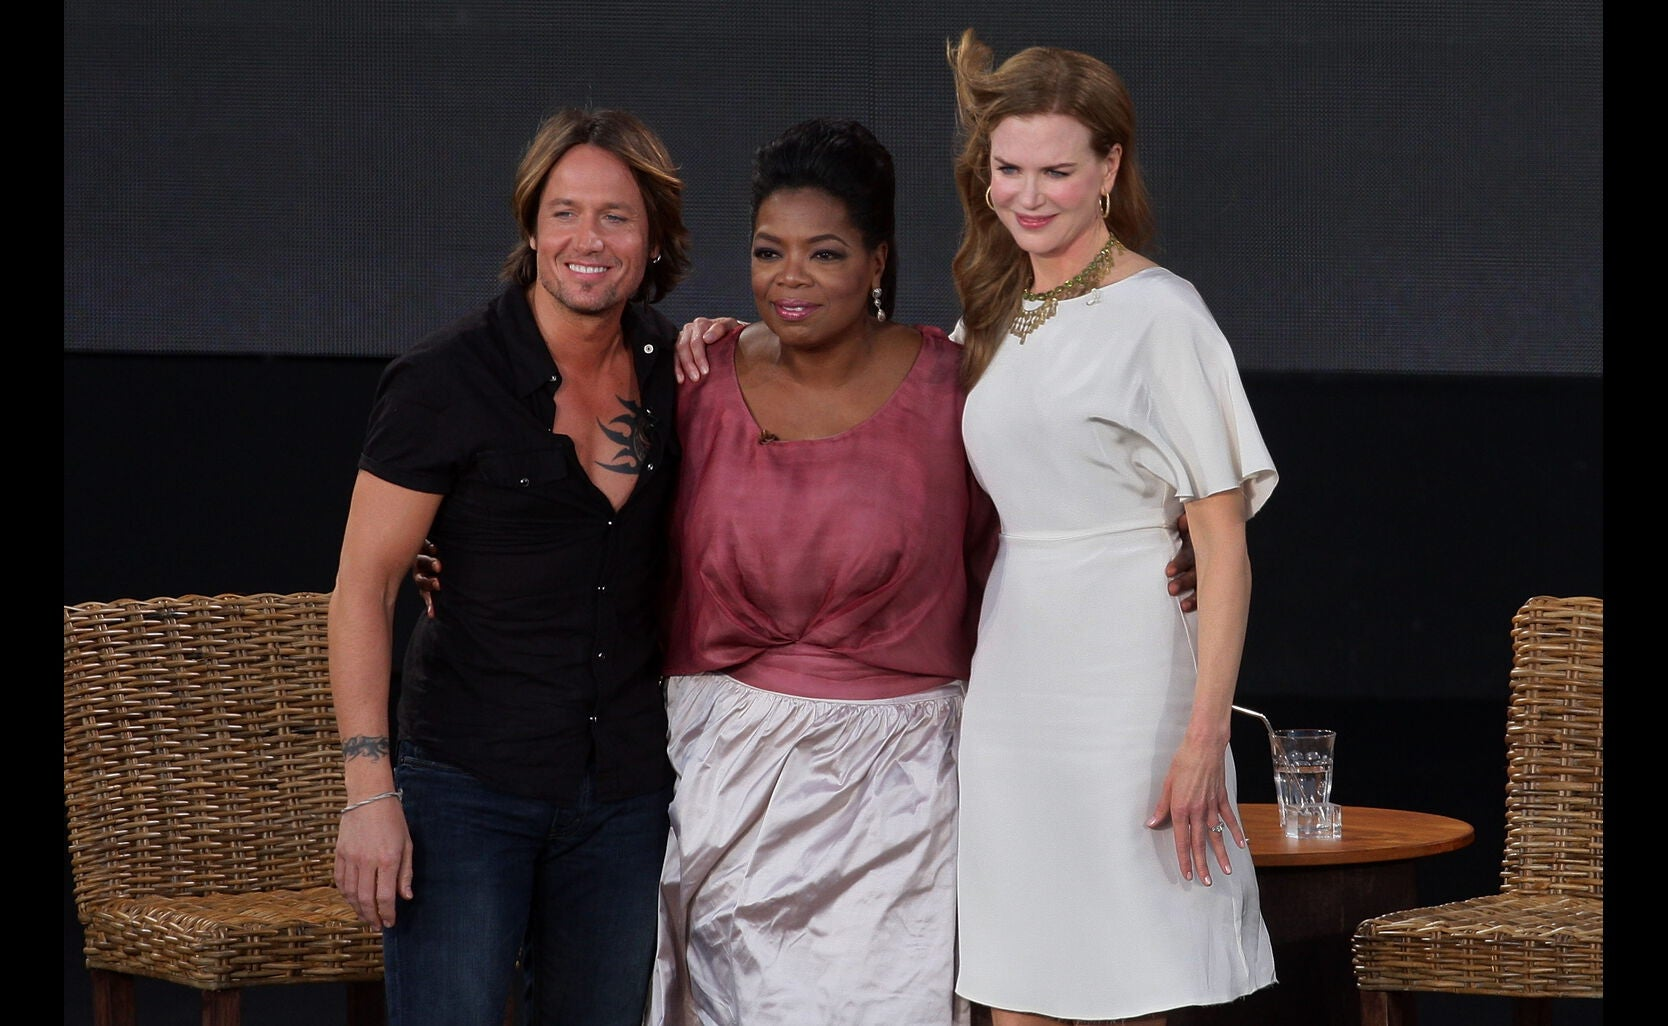 Oprah in Sydney with Nicole Kidman and Keith Urban